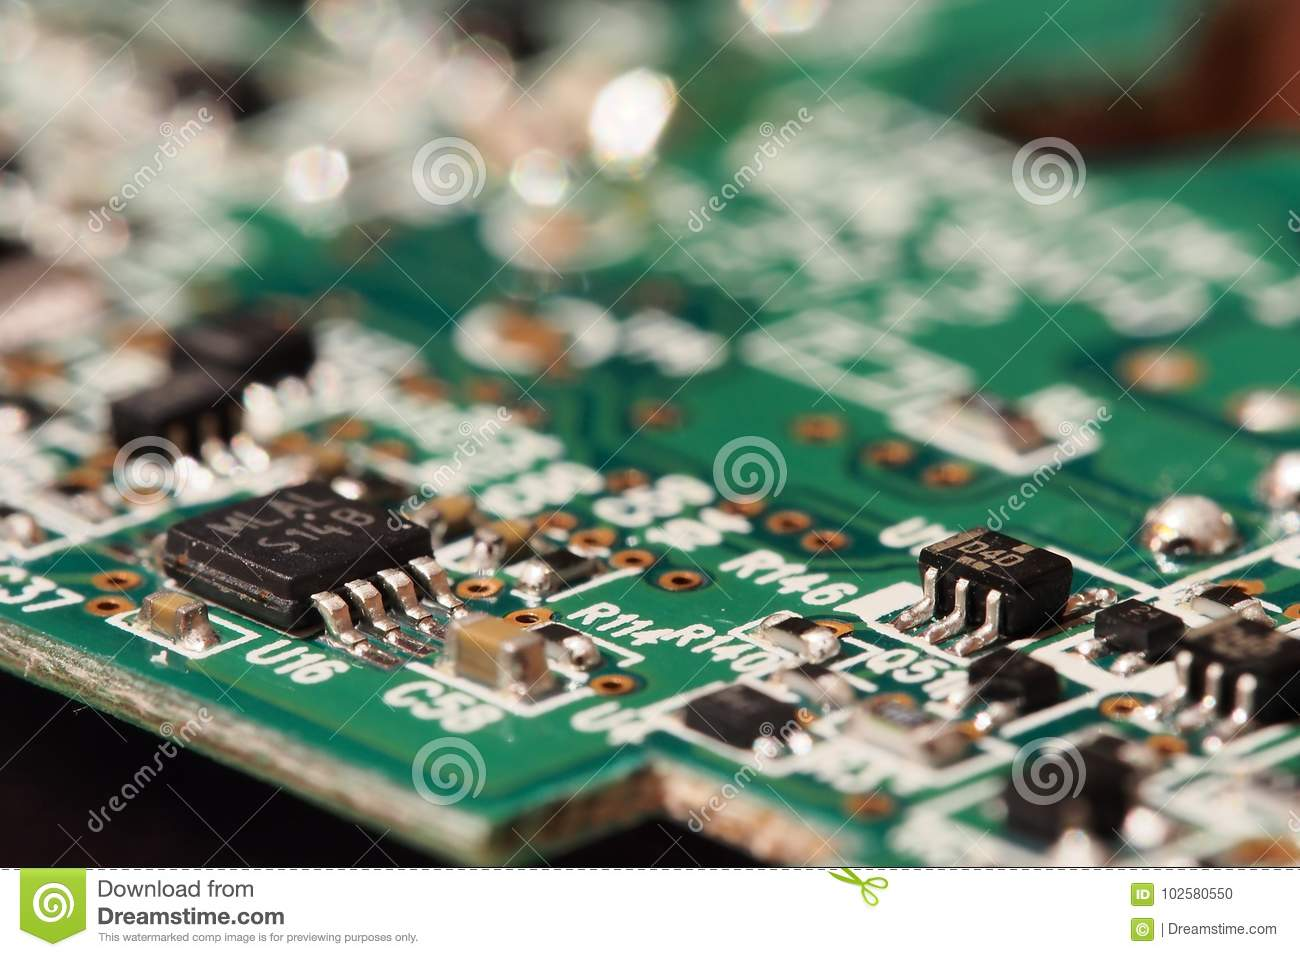 Circuit Board Stock Photo Image Of Engineering Technology 102580550 Computer With Electronics Components Royalty Free